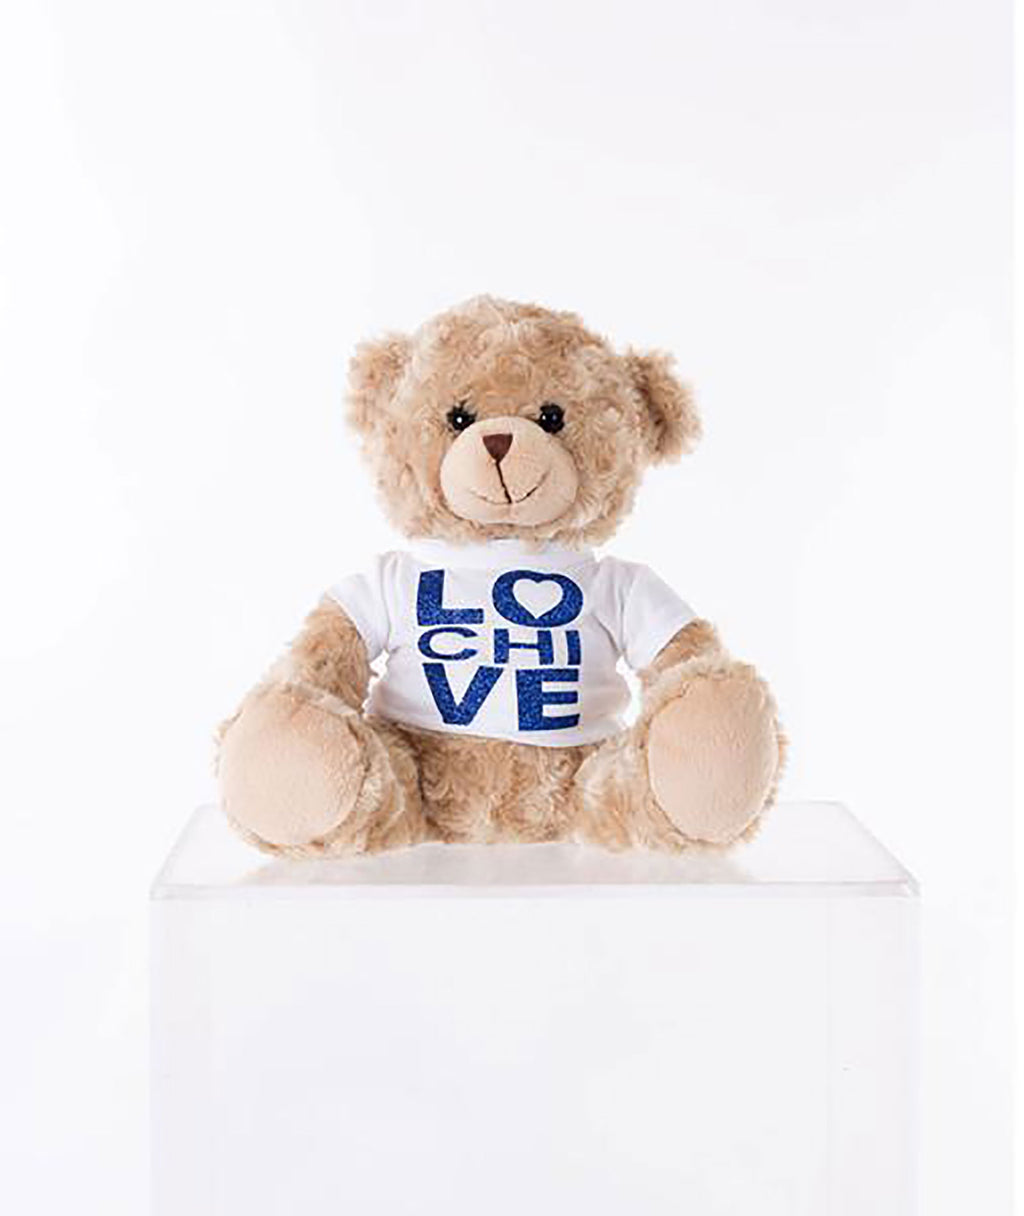 Camp Name Teddy Bear Love